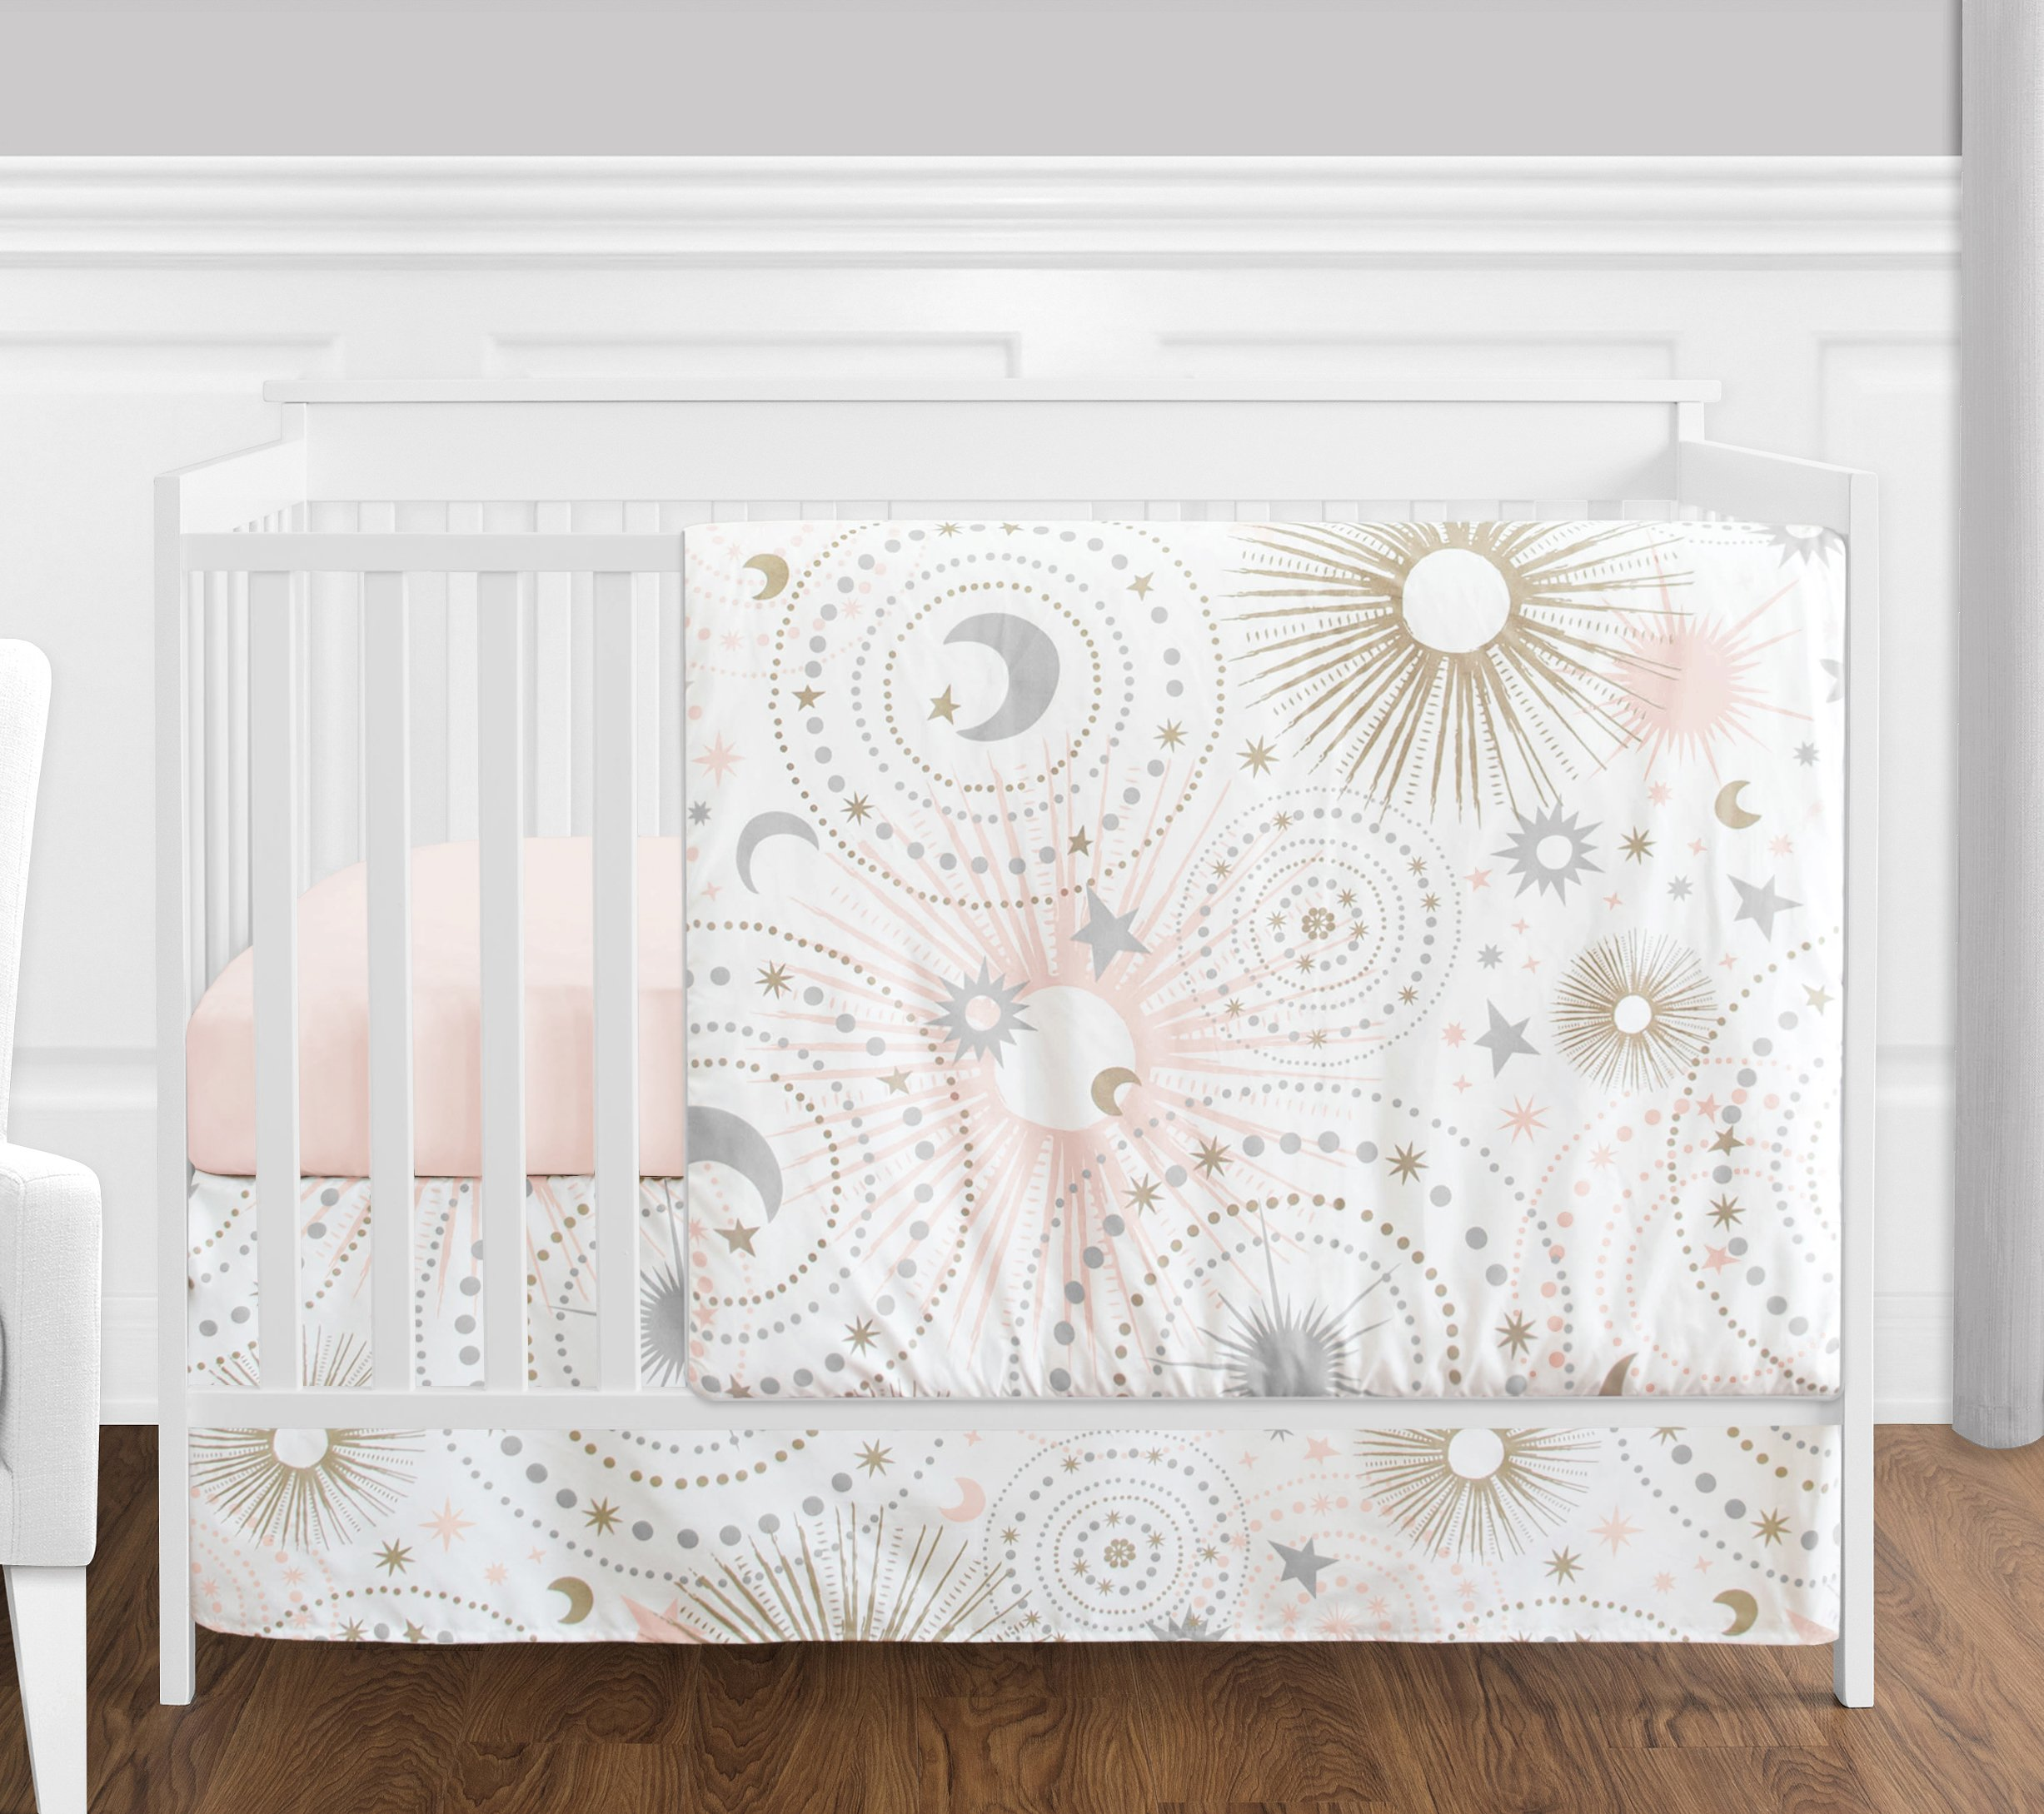 4 pc. Blush Pink, Gold, Grey and White Star and Moon Celestial Baby Girl Crib Bedding Set without Bumper by Sweet Jojo Designs by Sweet Jojo Designs